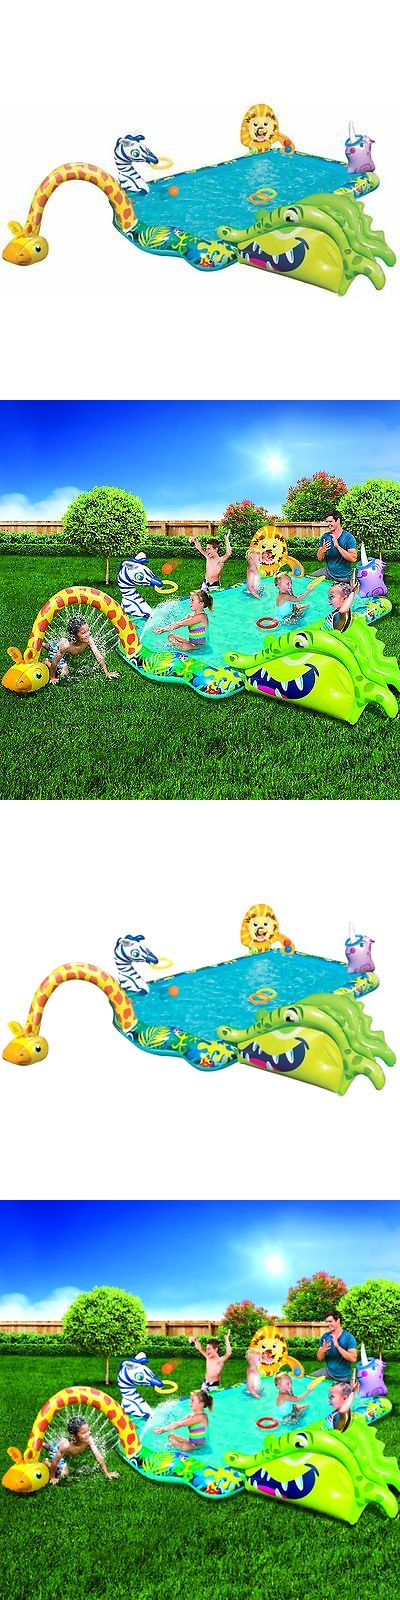 Inflatable and Kid Pools 116407: Kids Swimming Pool Outdoor Inflatable Kiddie Pools Water Fun Splash Activity New -> BUY IT NOW ONLY: $60.6 on eBay!